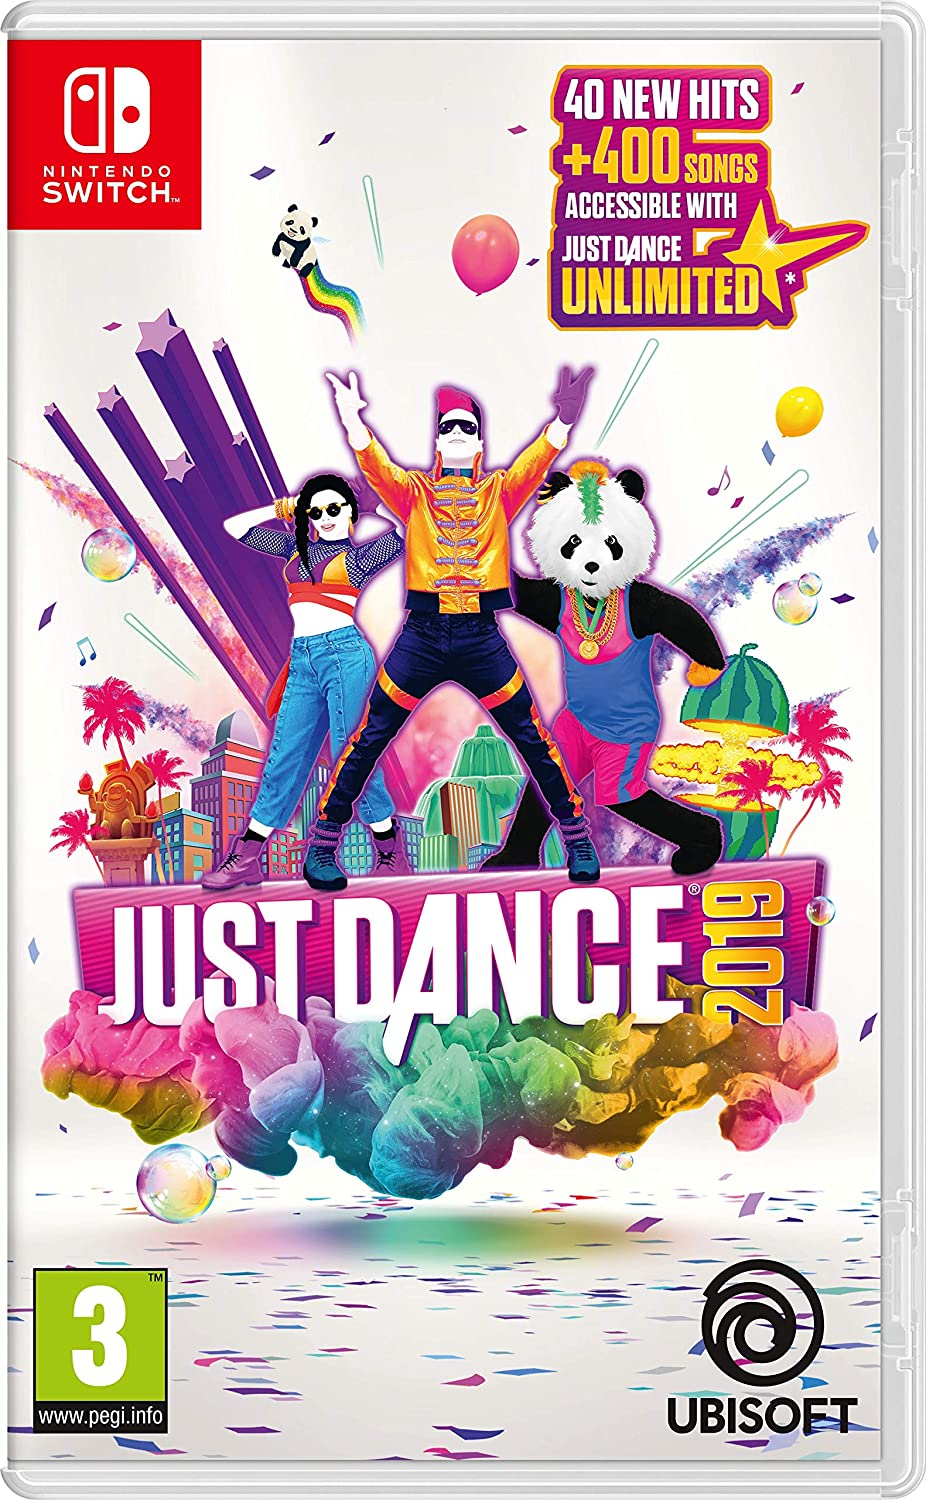 Ubisoft Just Dance 2019 Básico Nintendo Switch Inglés vídeo - Juego (Nintendo Switch, Danza, Modo multijugador, PG (Guía parental)): Amazon.es: Videojuegos